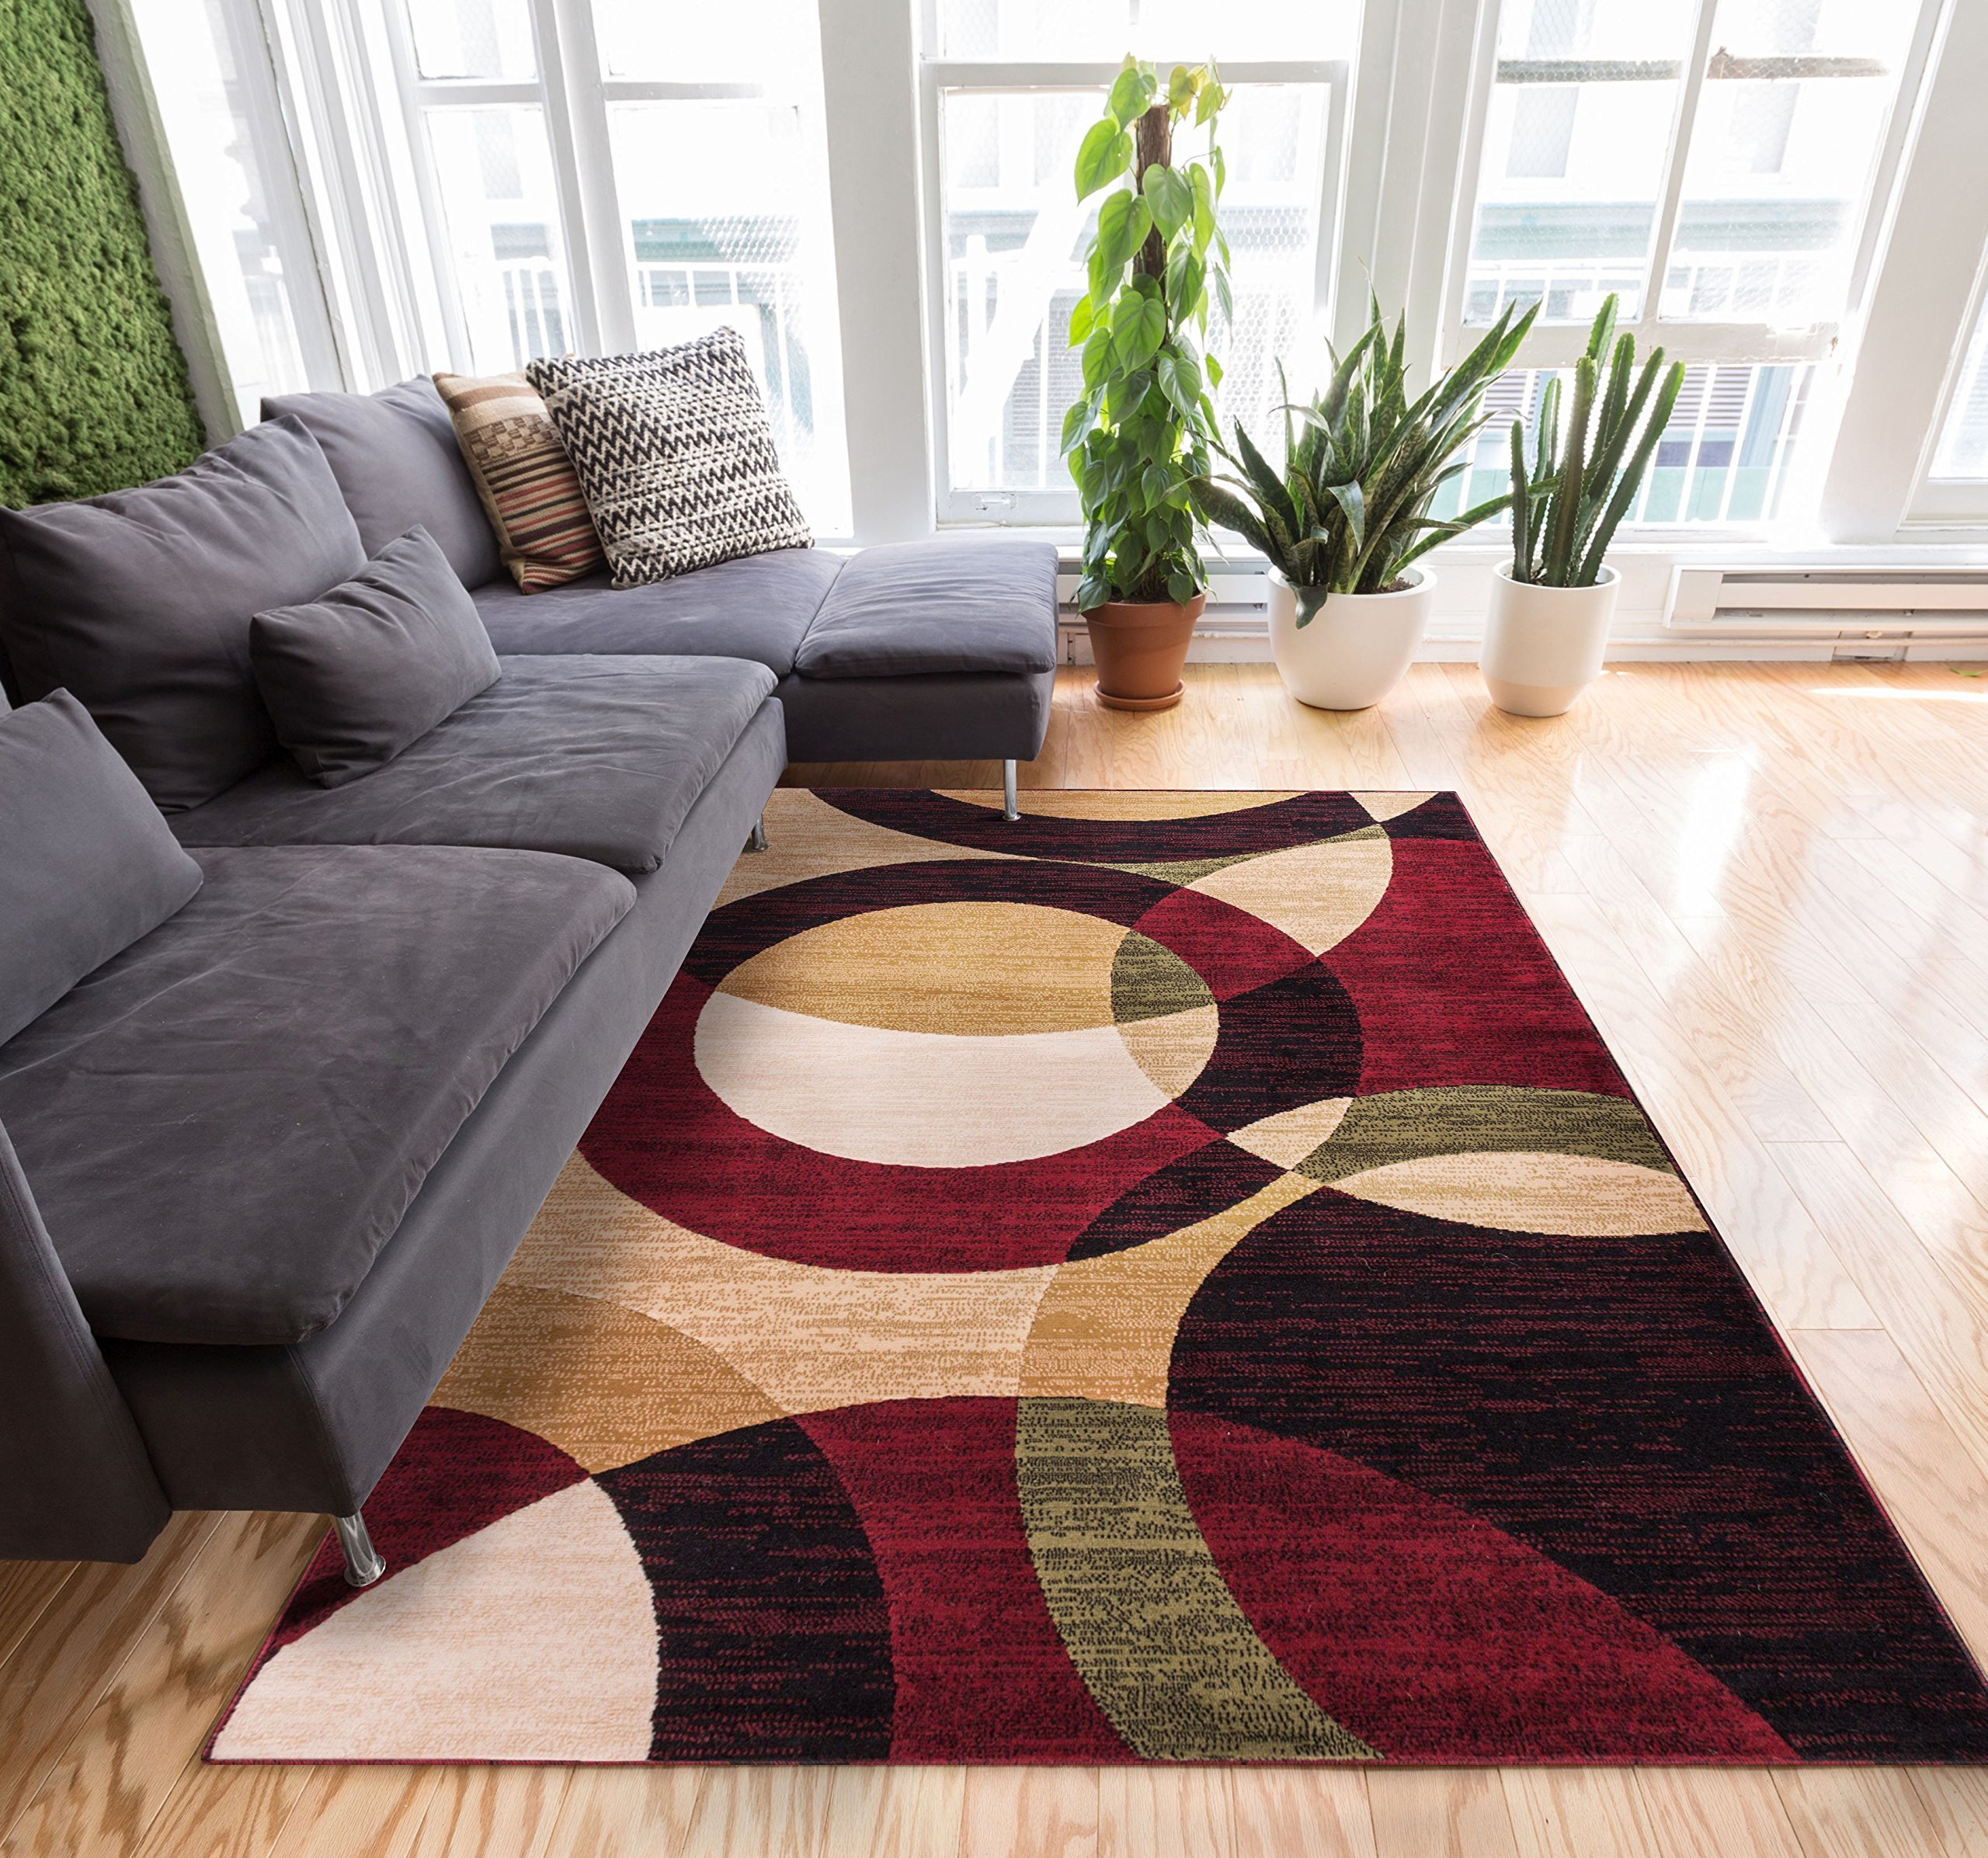 Well Woven Dulcet Bingo Modern Area Rug Doormat 1940 Rug 2' 7'' X 3' 11'' Multi Red Circles Entry Kitchen Scatter Mat by Well Woven